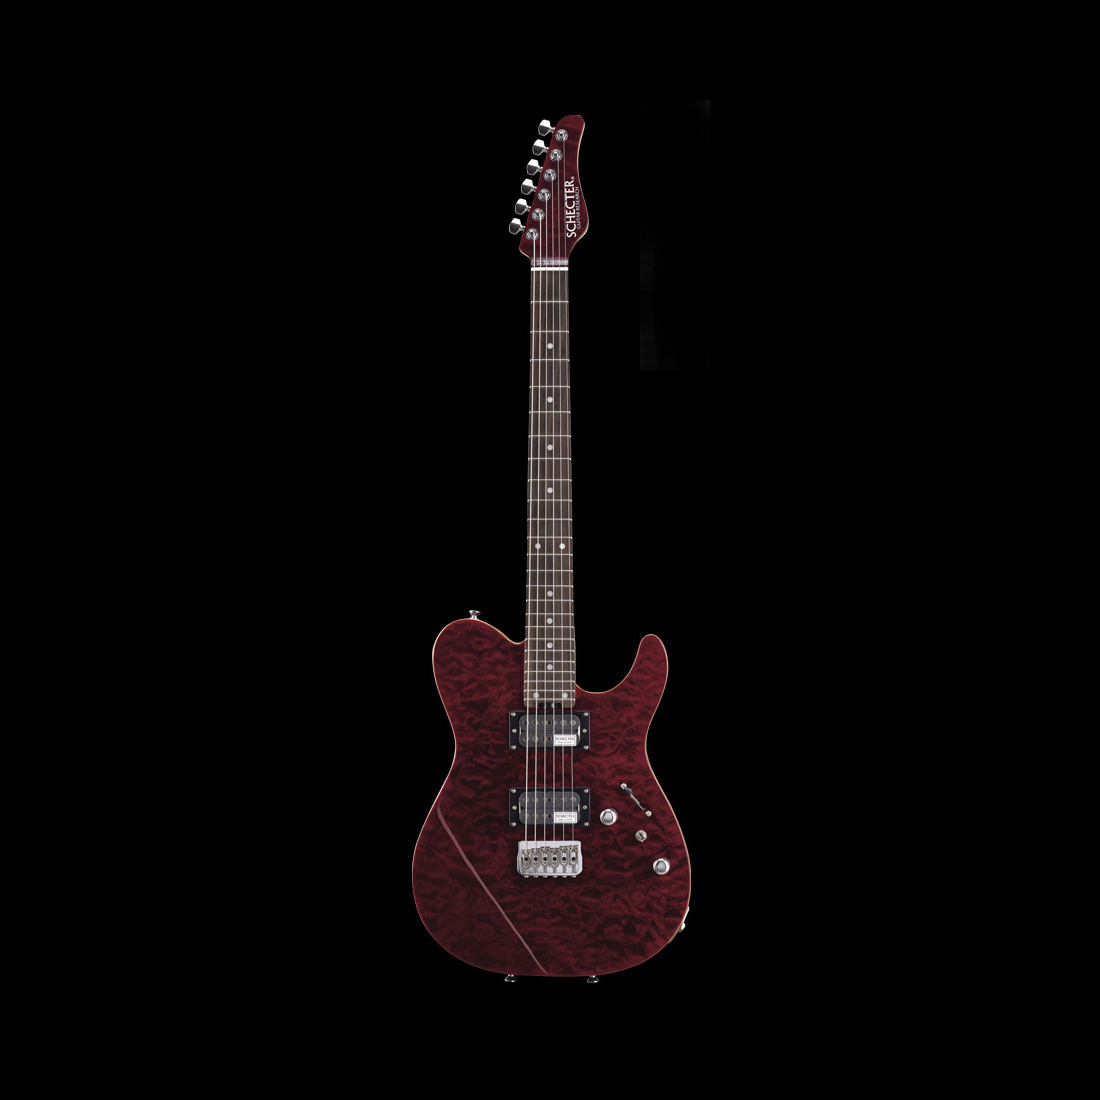 Schecter / KR-24-2H-FXD-R See Thru Red シェクター エレキギター 【お取り寄せ商品】